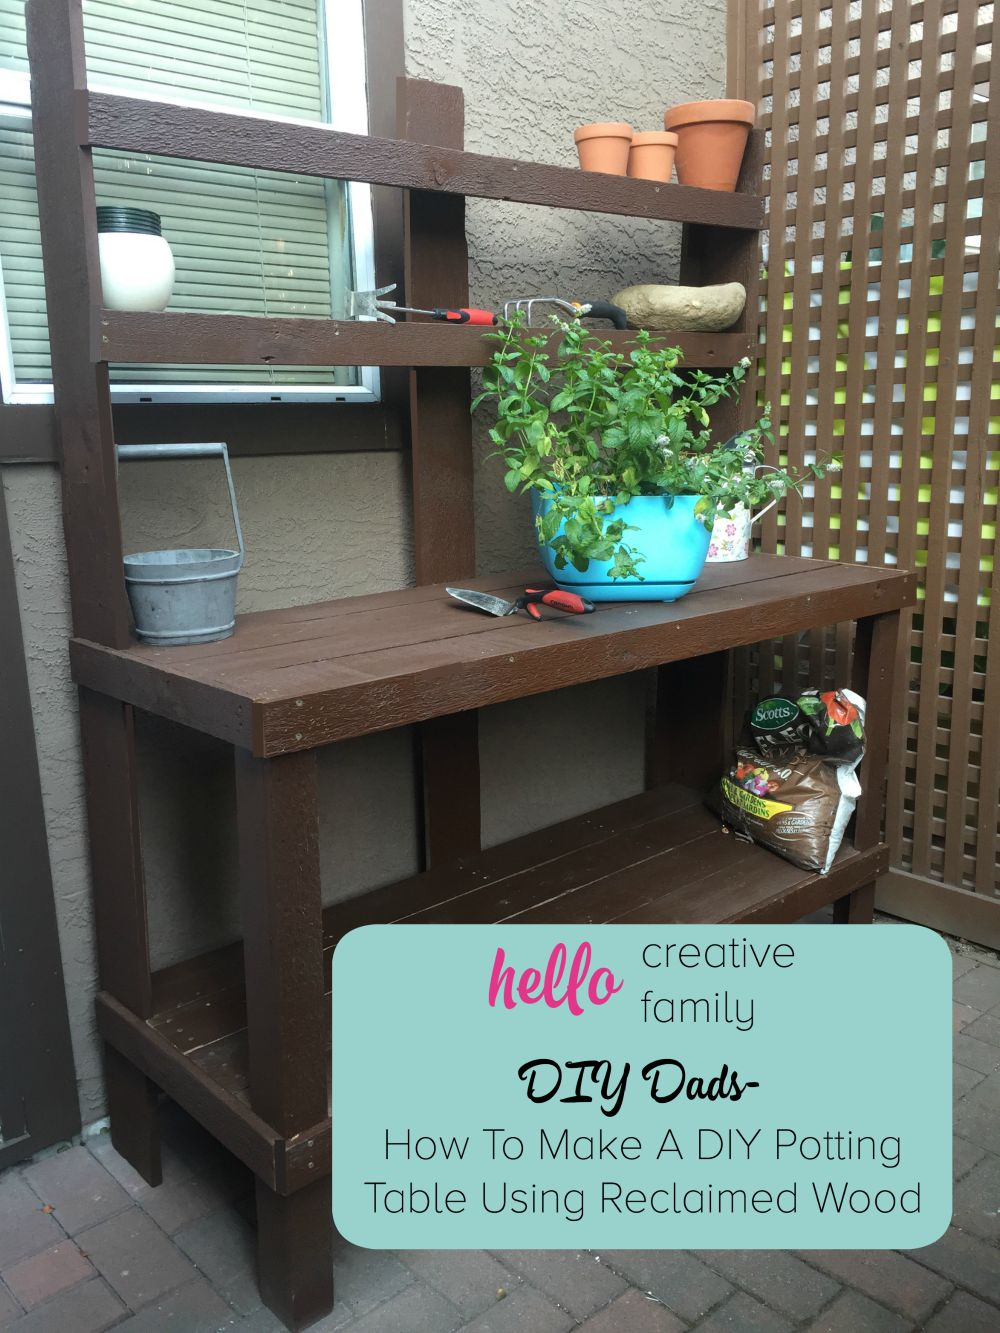 Wondrous Diy Dads How To Make A Diy Potting Table Using Reclaimed Ibusinesslaw Wood Chair Design Ideas Ibusinesslaworg